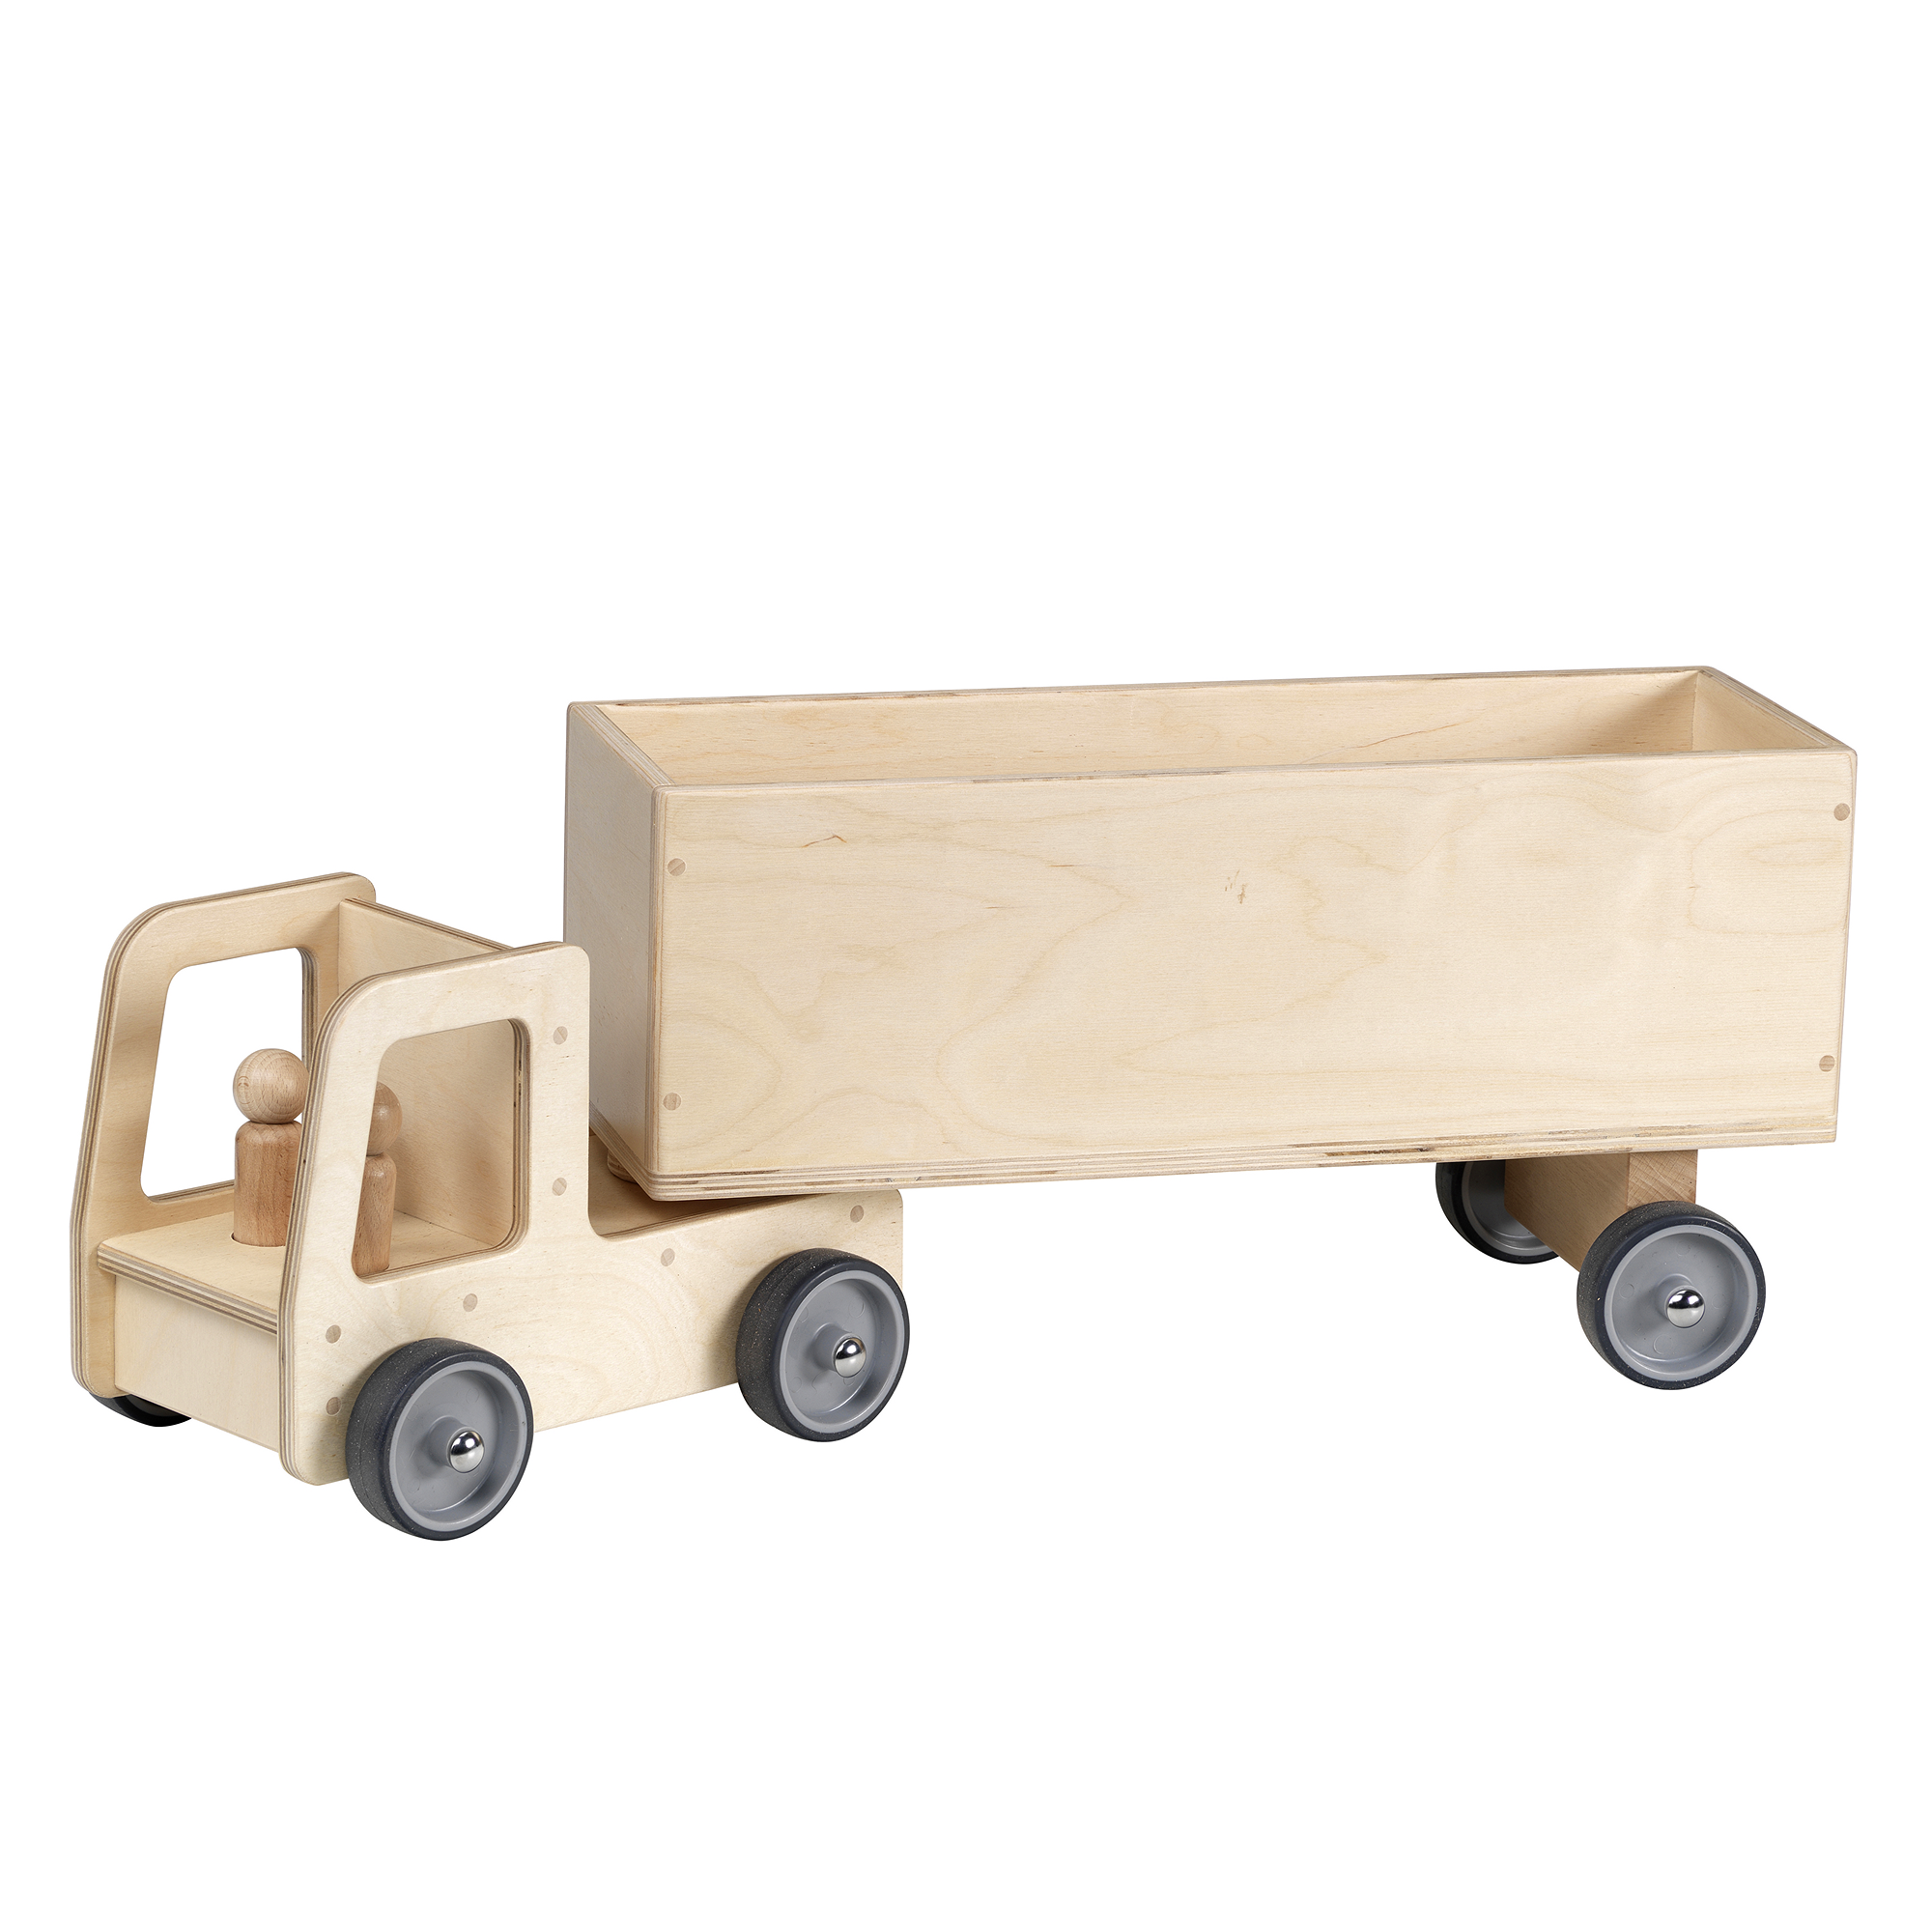 Millhouse - Giant Wooden Truck and Trailer